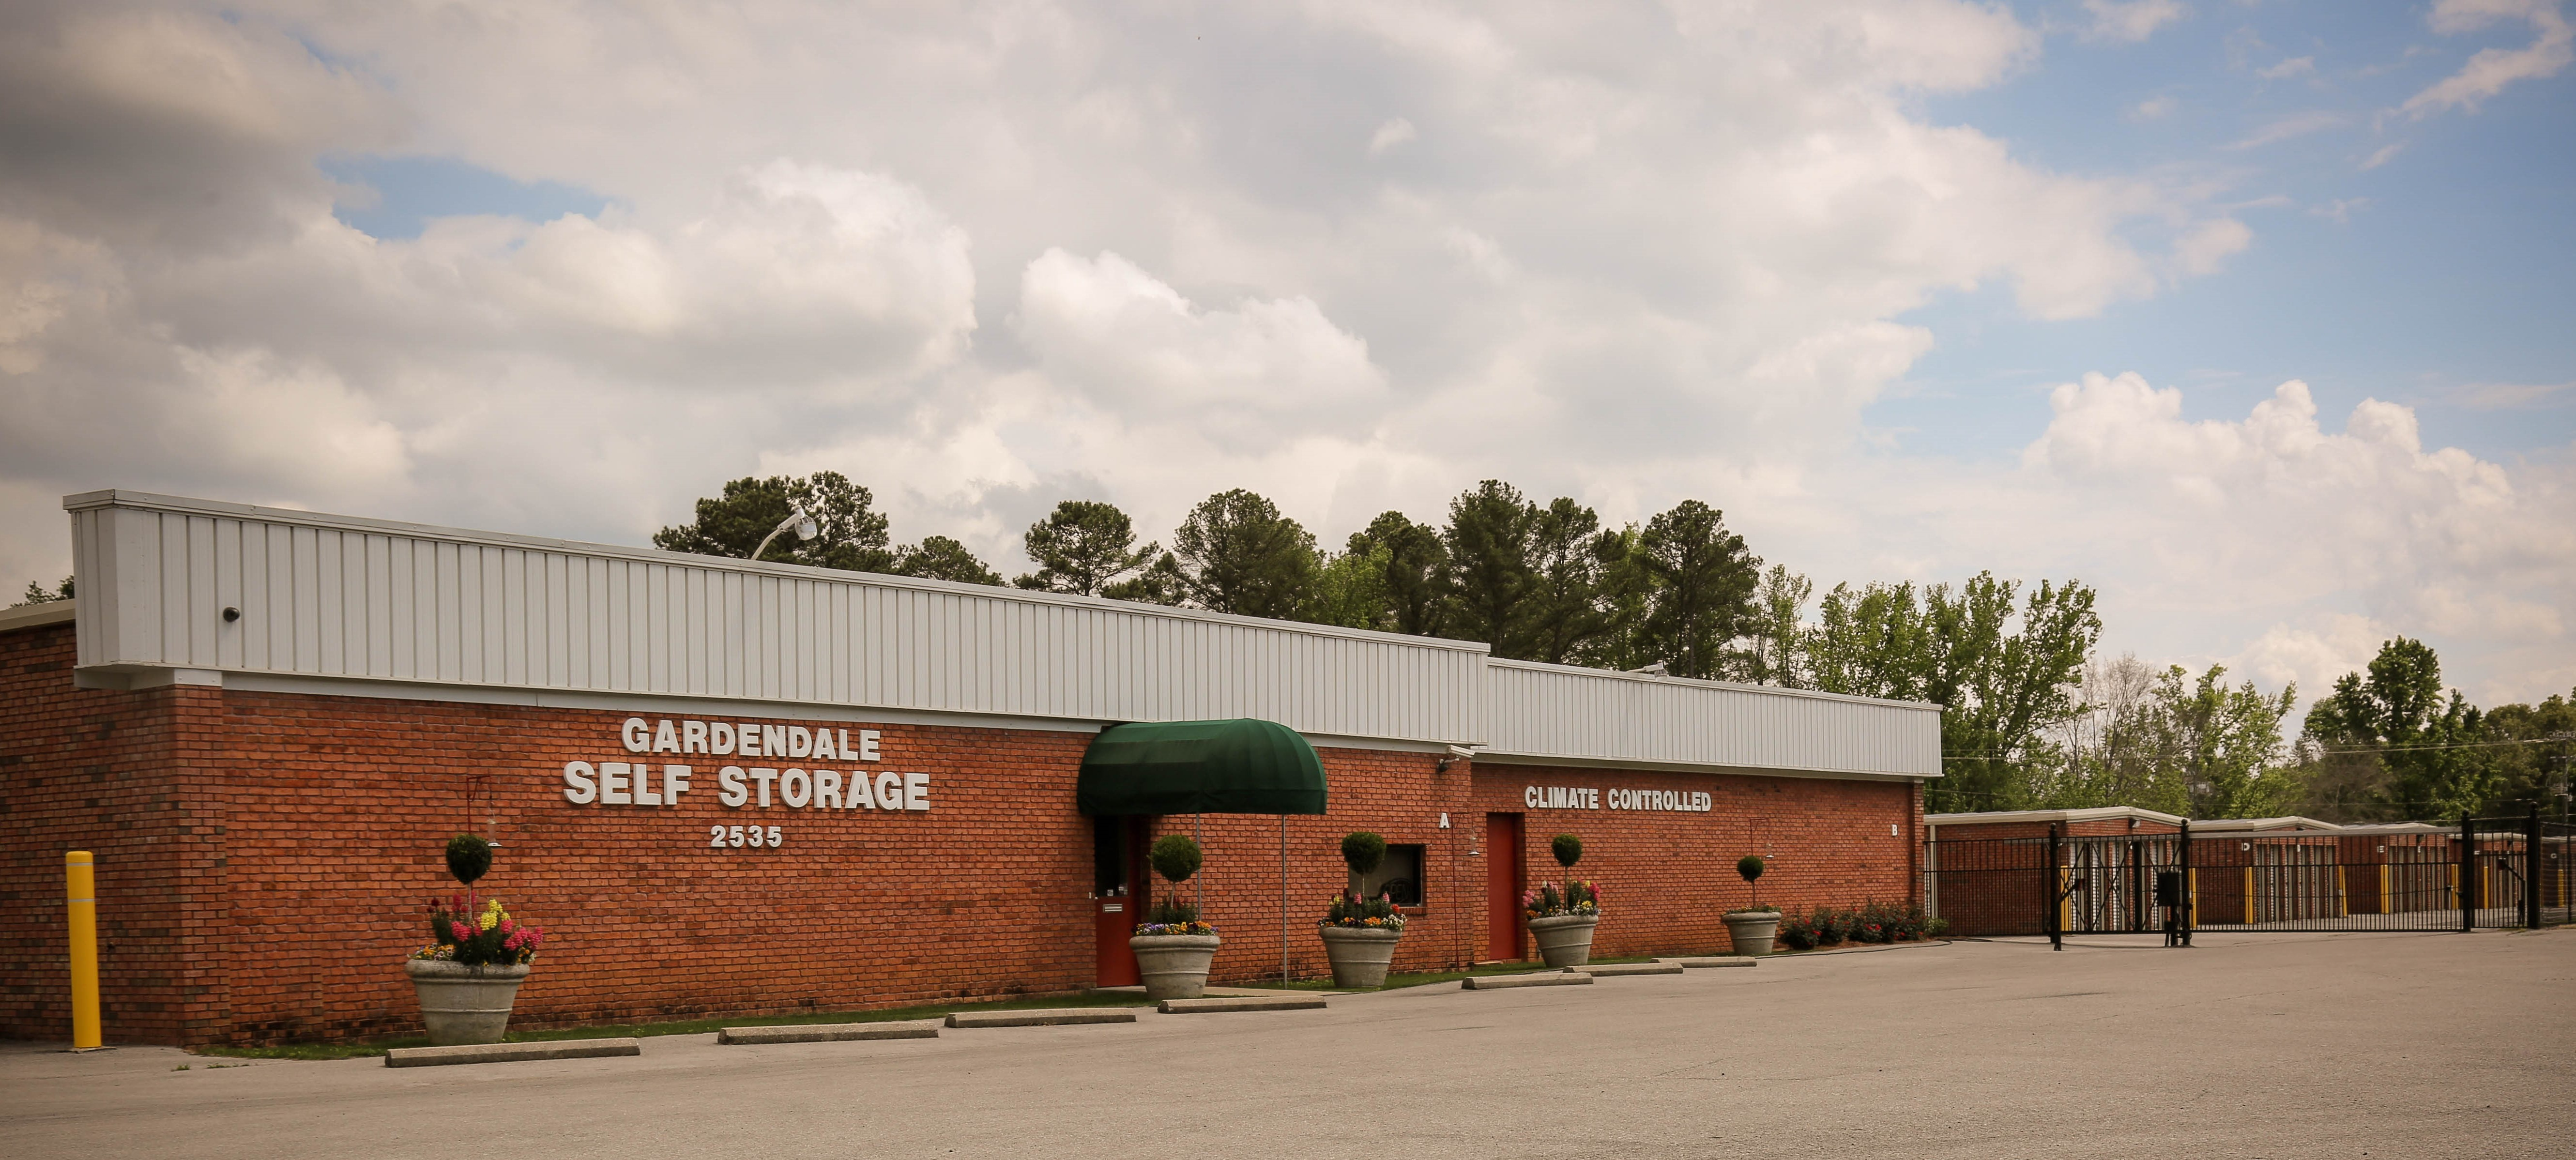 Self Storage in Gardendale, AL